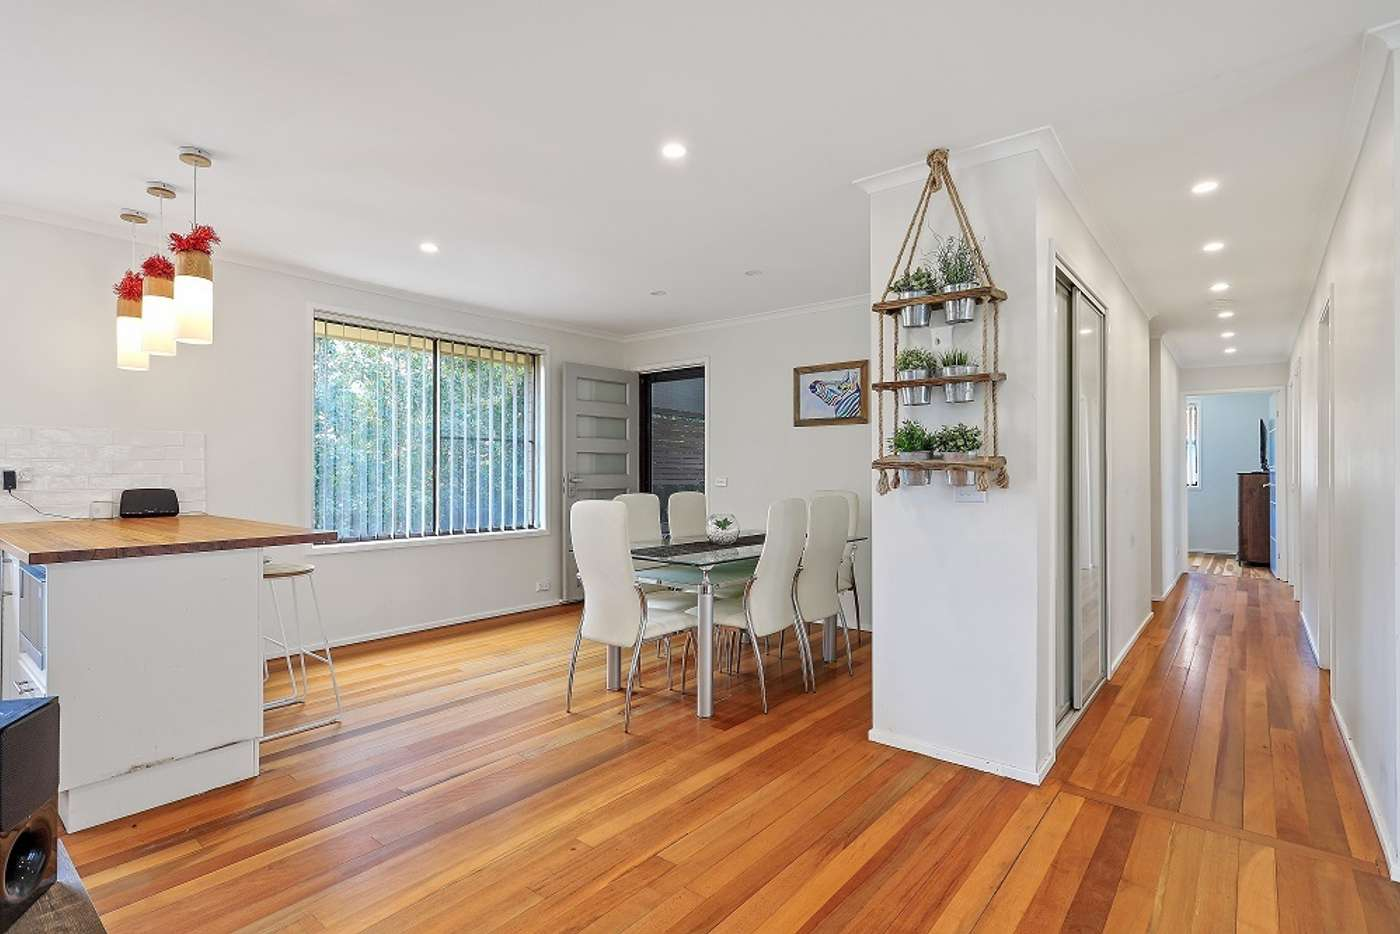 Fifth view of Homely house listing, 24 Beach Street, Vincentia NSW 2540